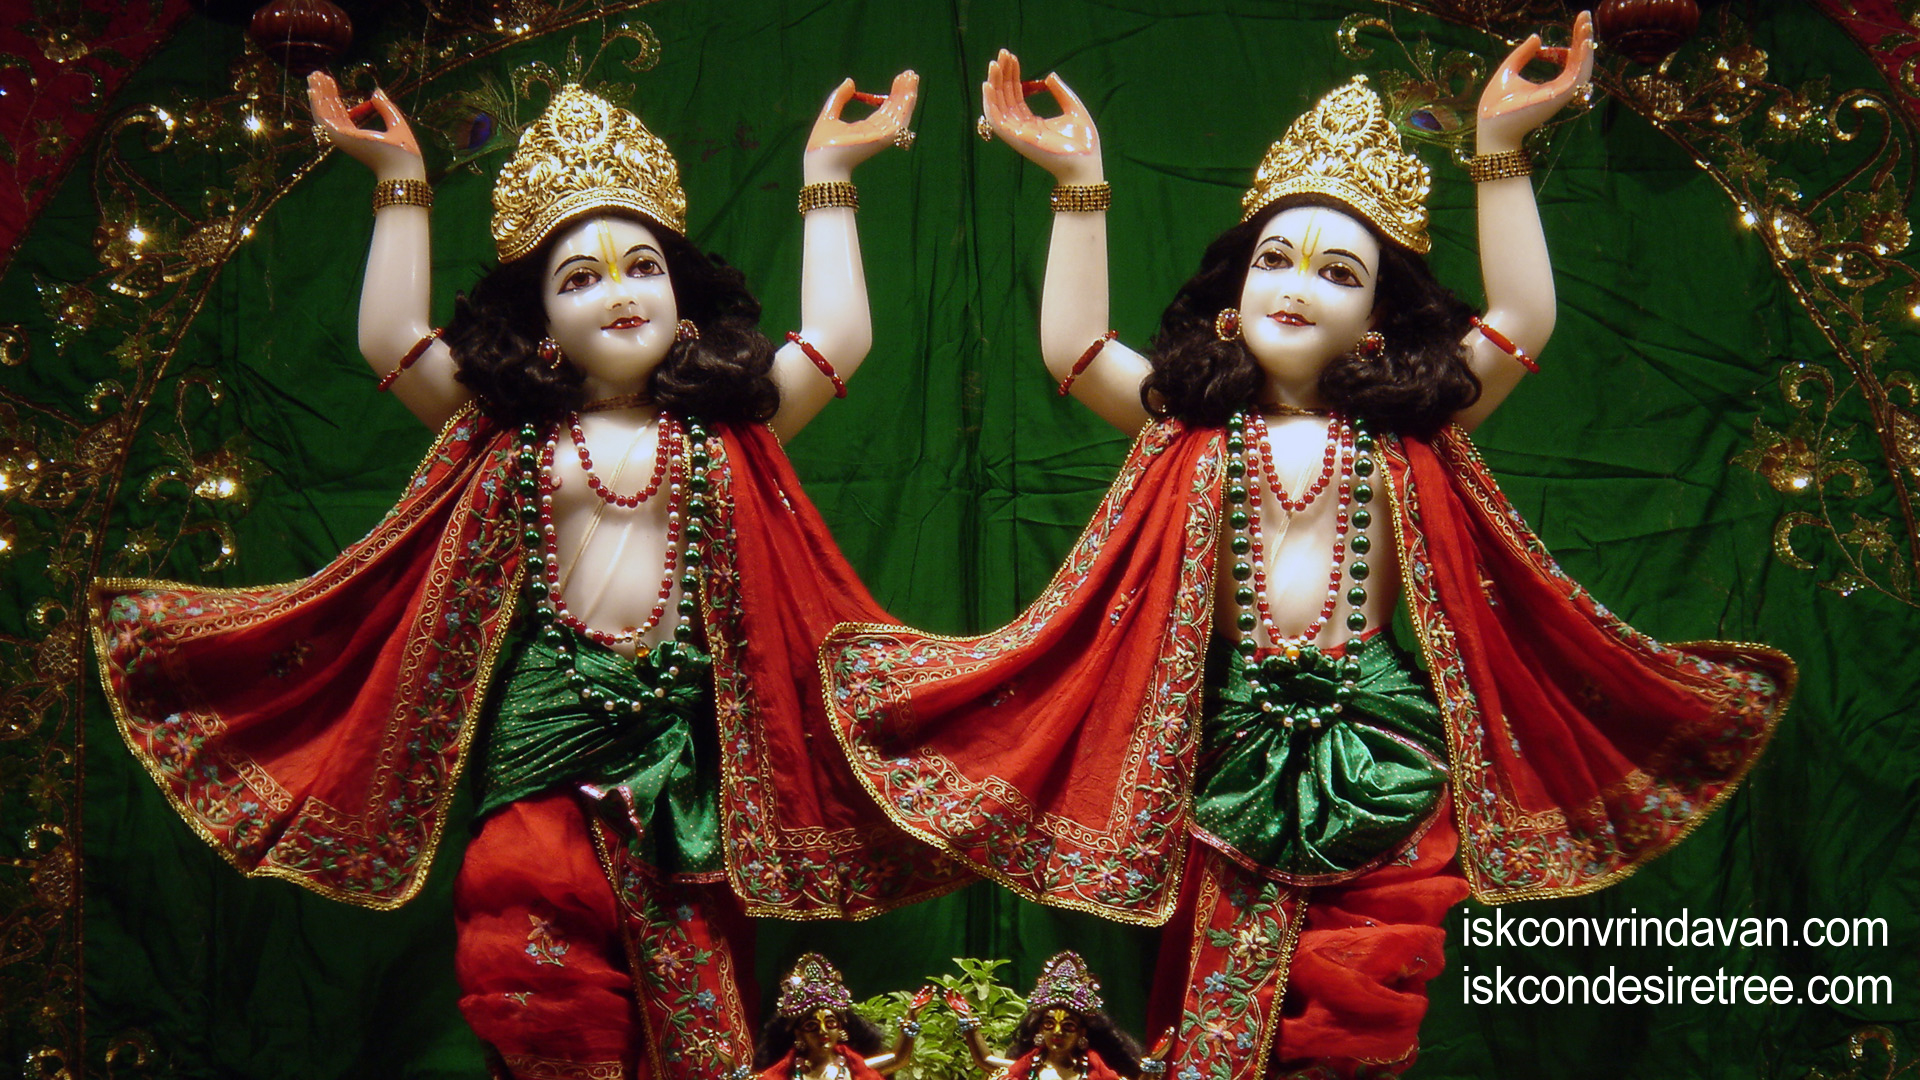 Sri Sri Gaura Nitai Wallpaper (055) Size 1920x1080 Download